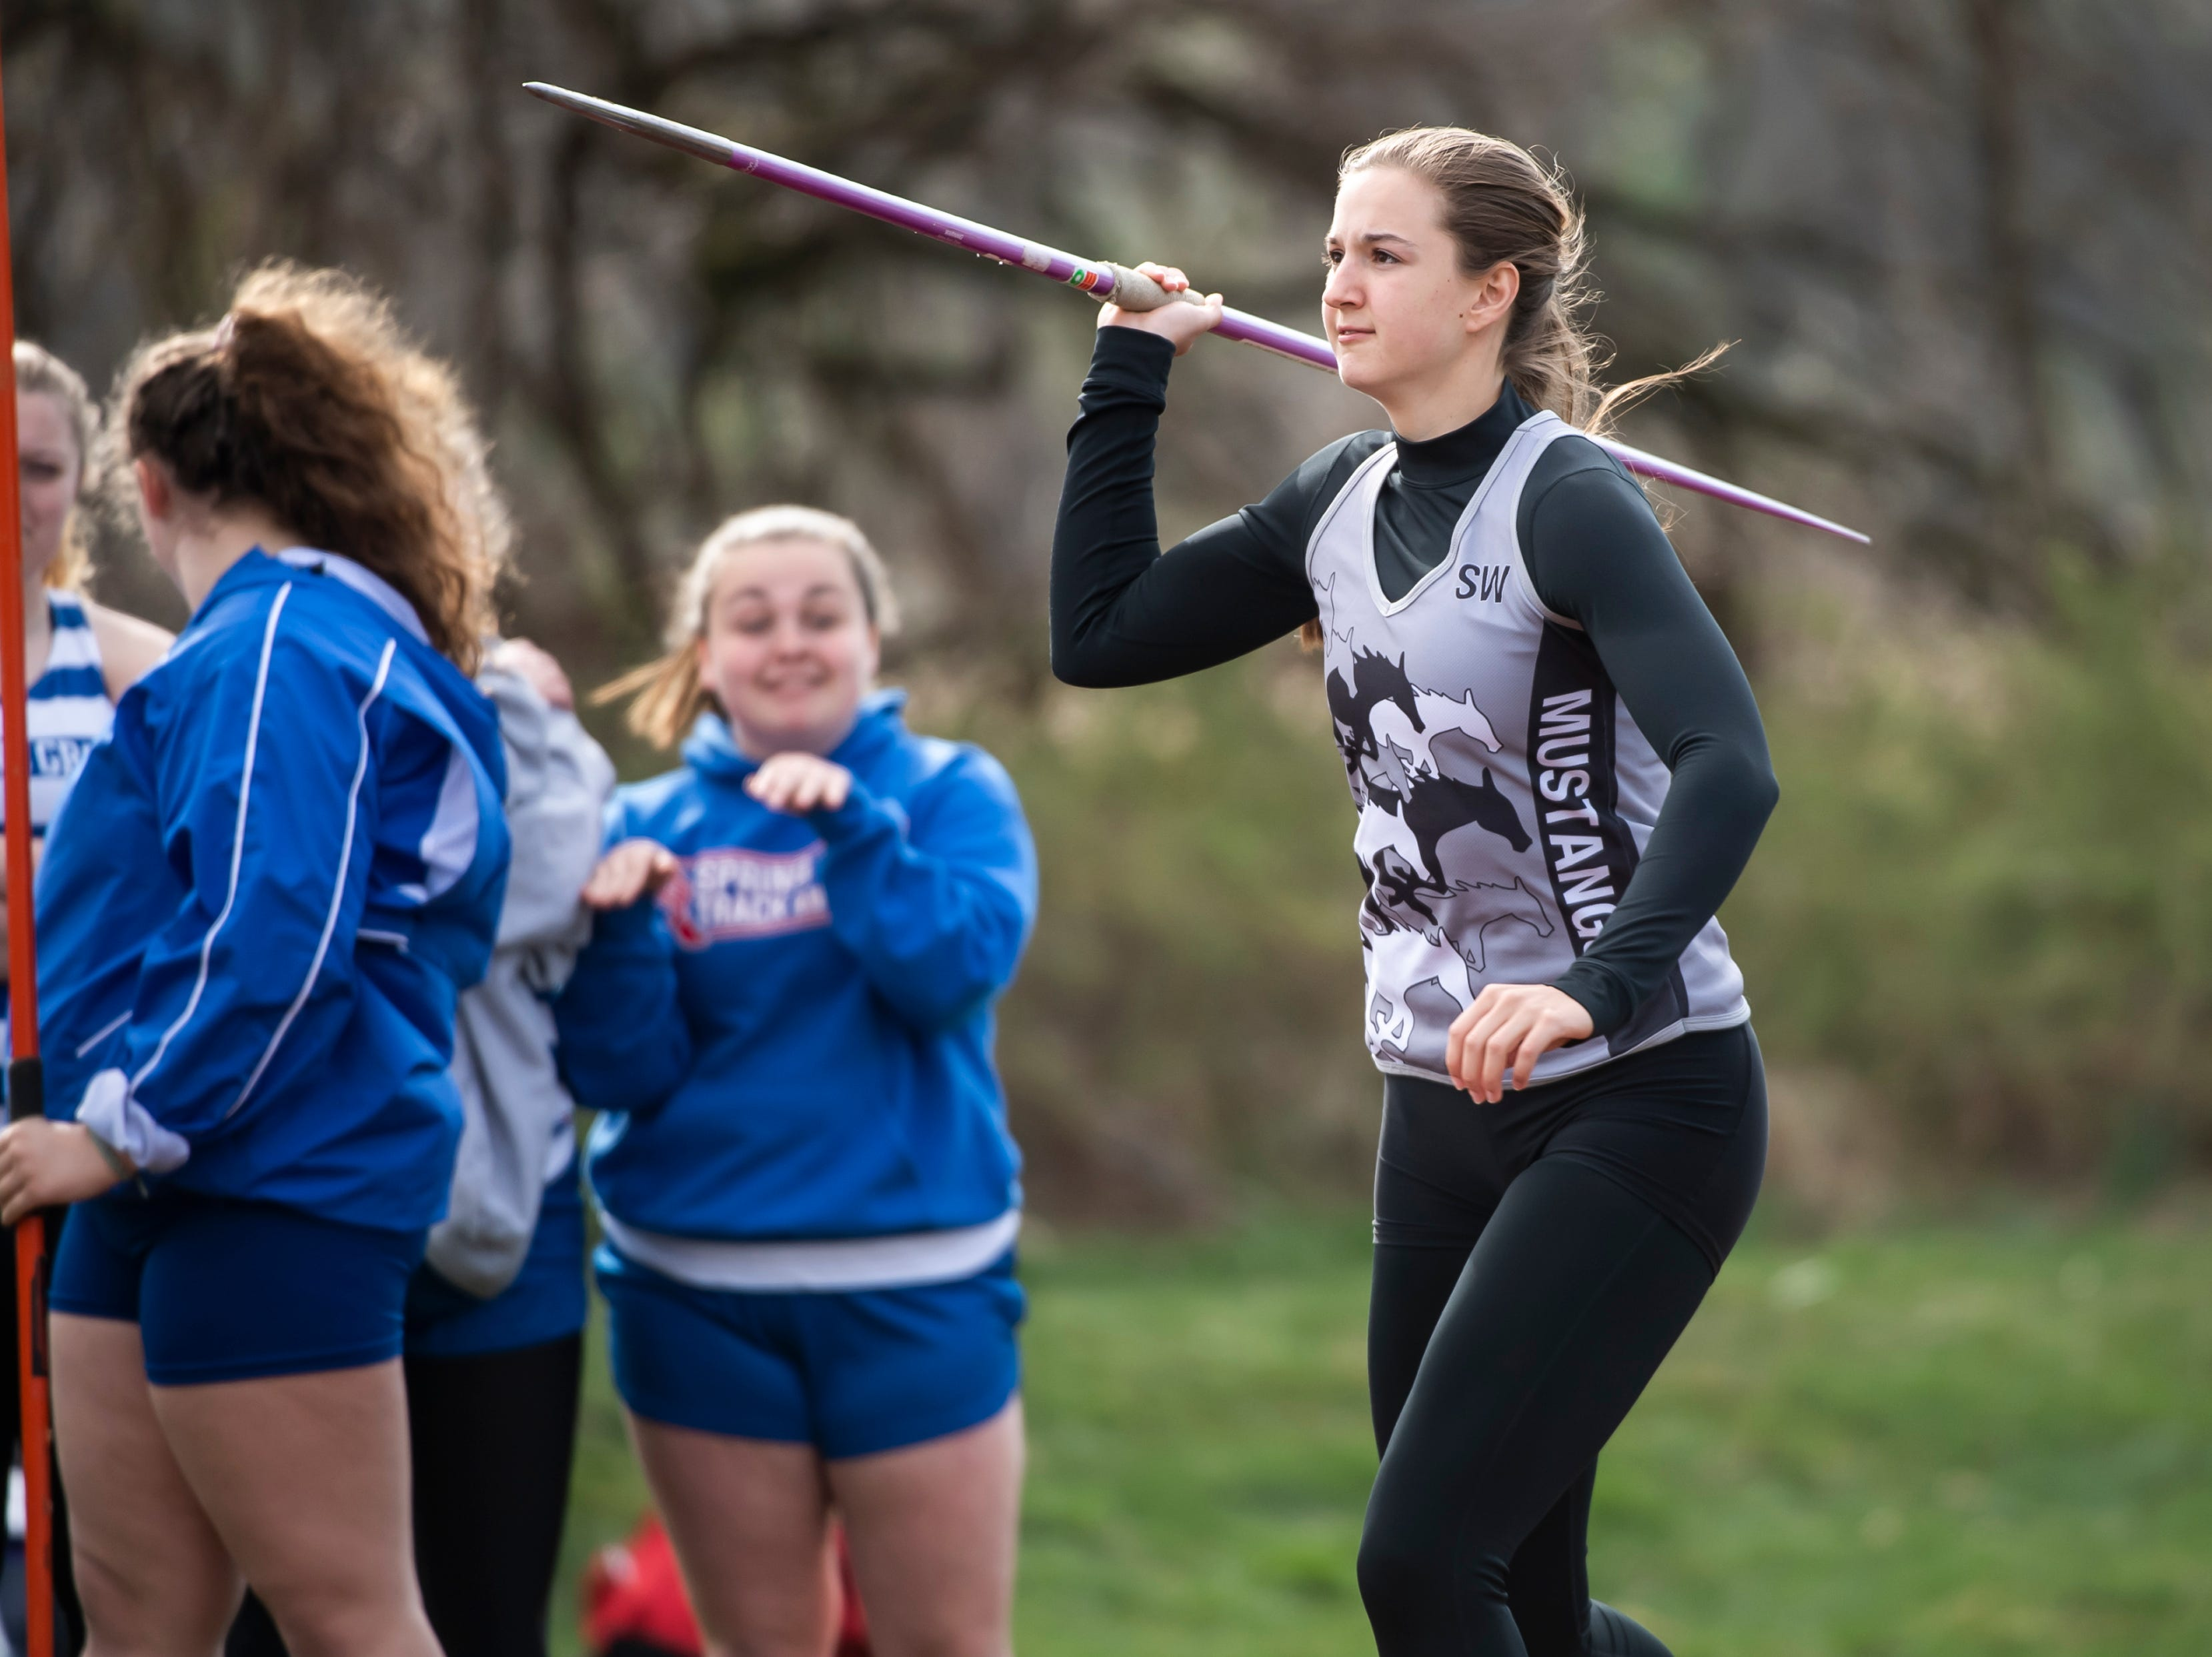 South Western's Taylor Geiman competes in the javelin throw during a track and field meet against Spring Grove on Thursday, April 11, 2019.